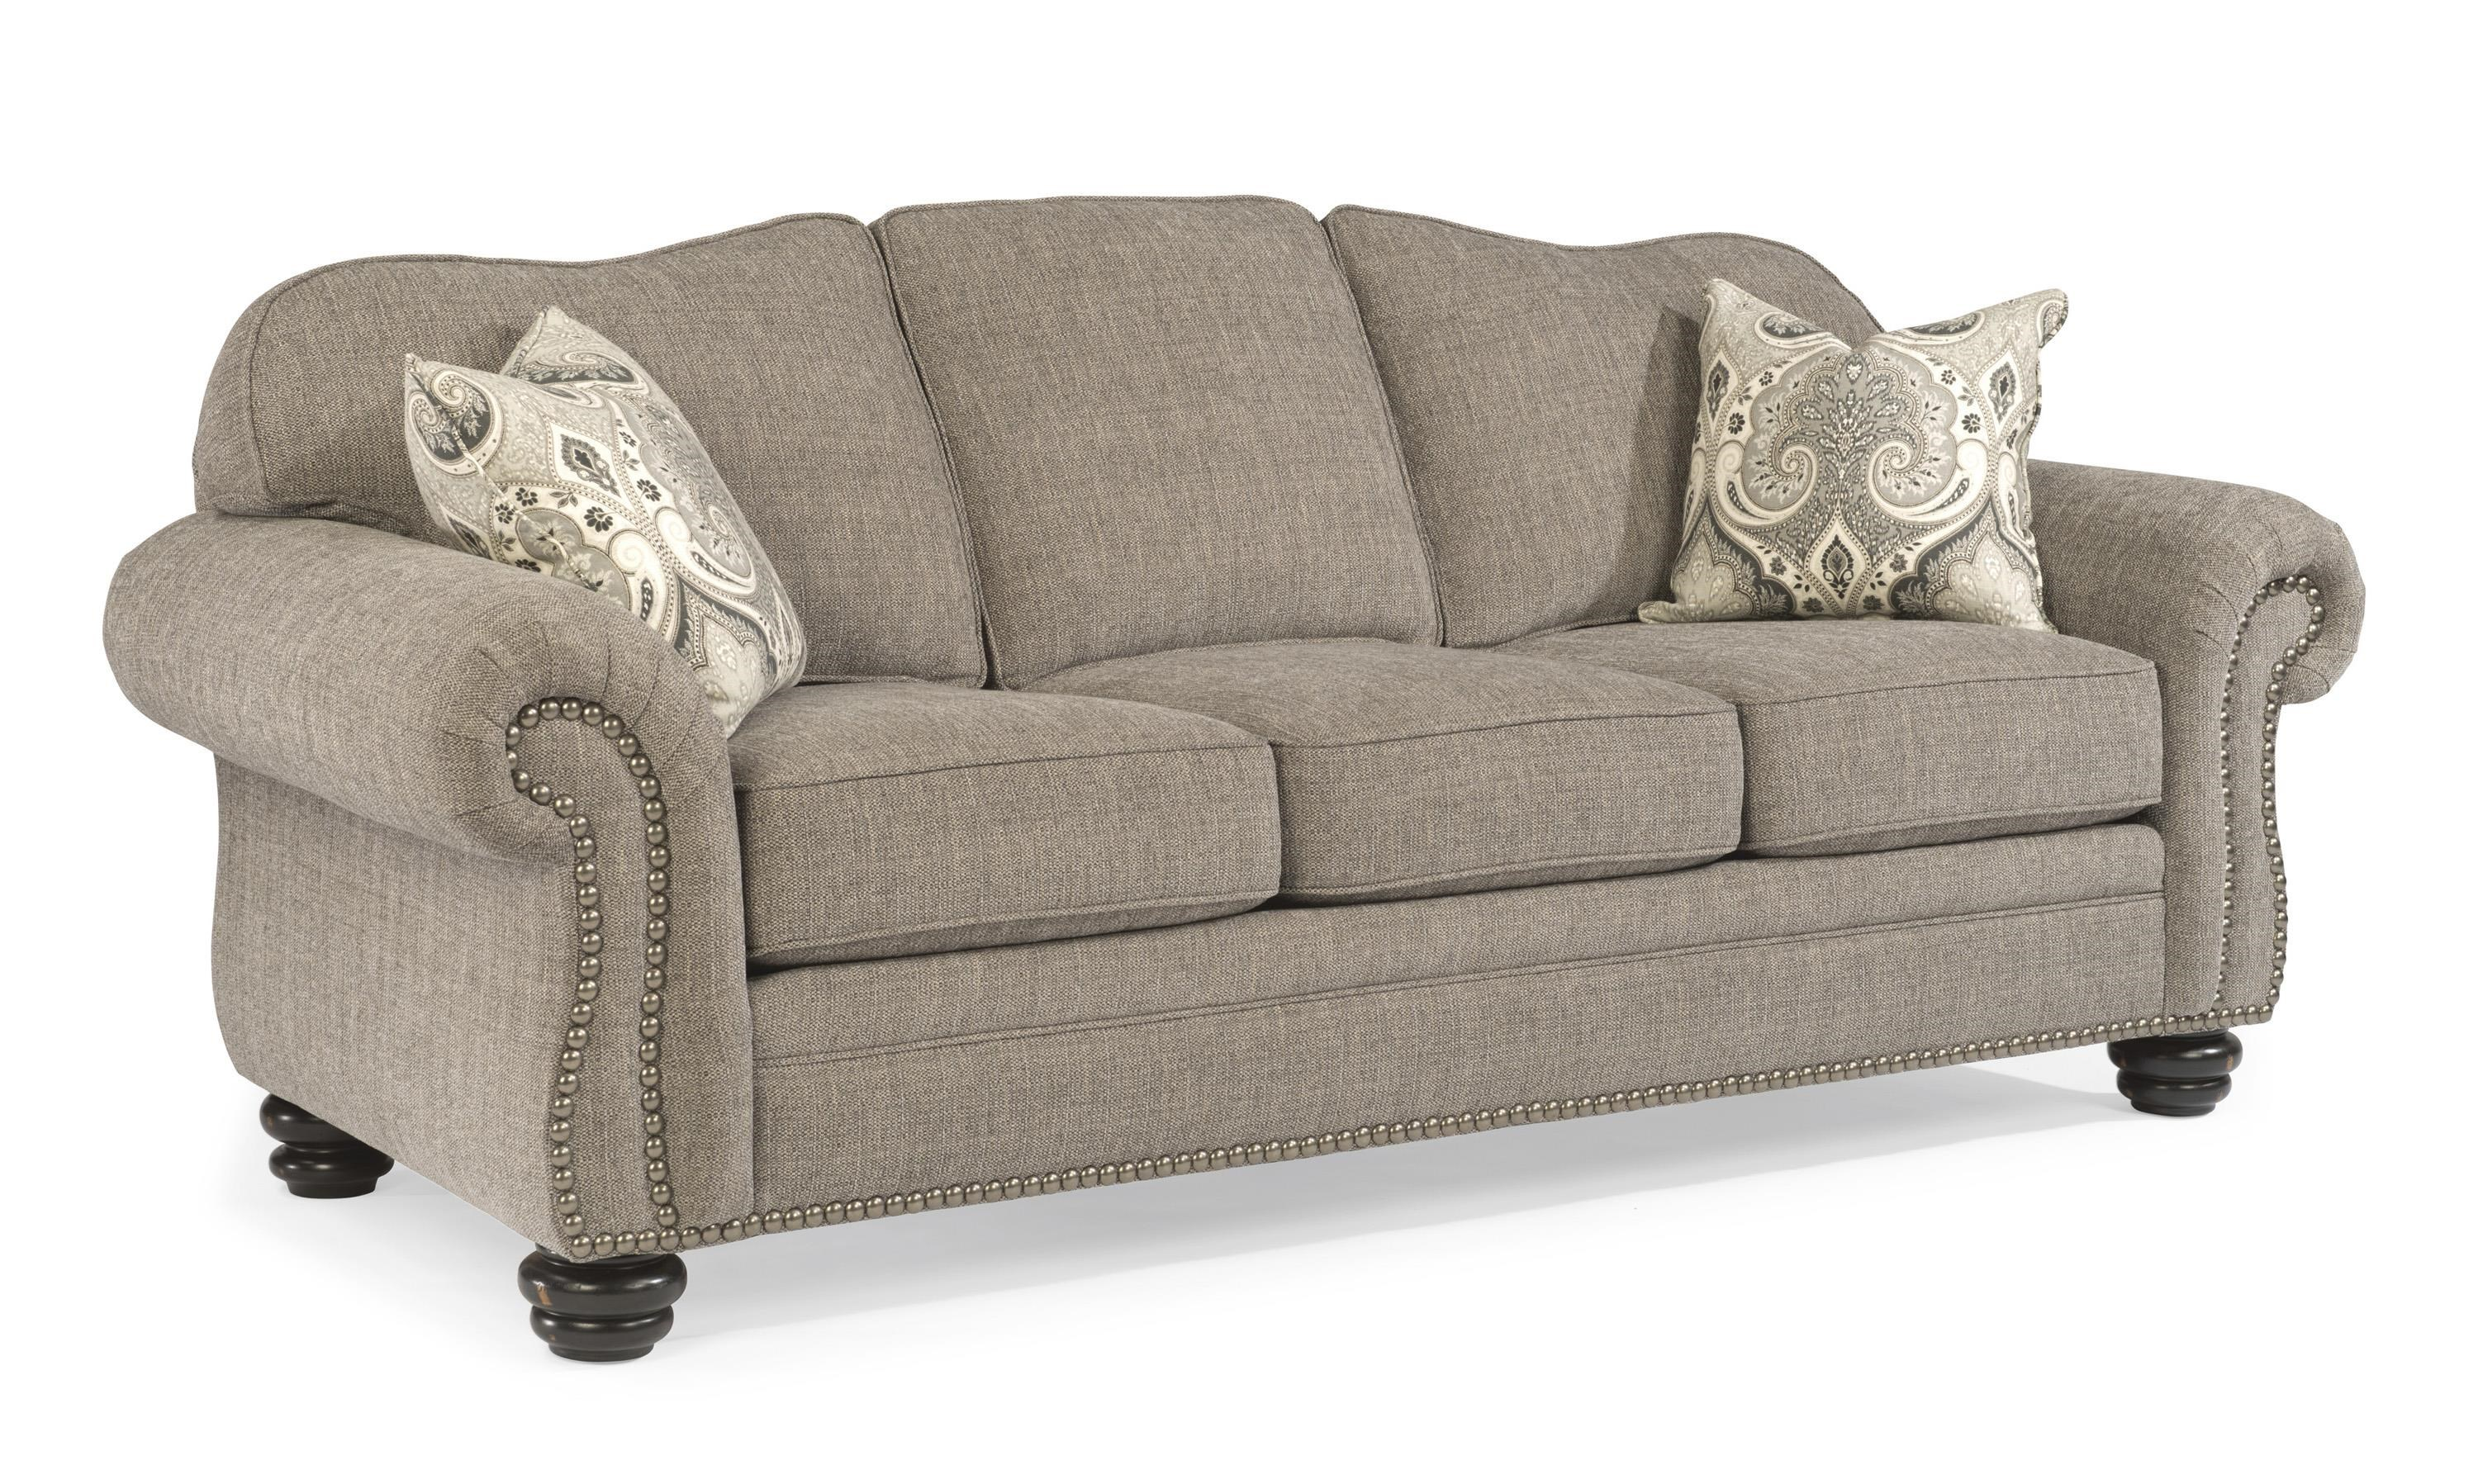 Flexsteel Bexley (Clackamas Store Only) Traditional Sofa With Nail Head Trim